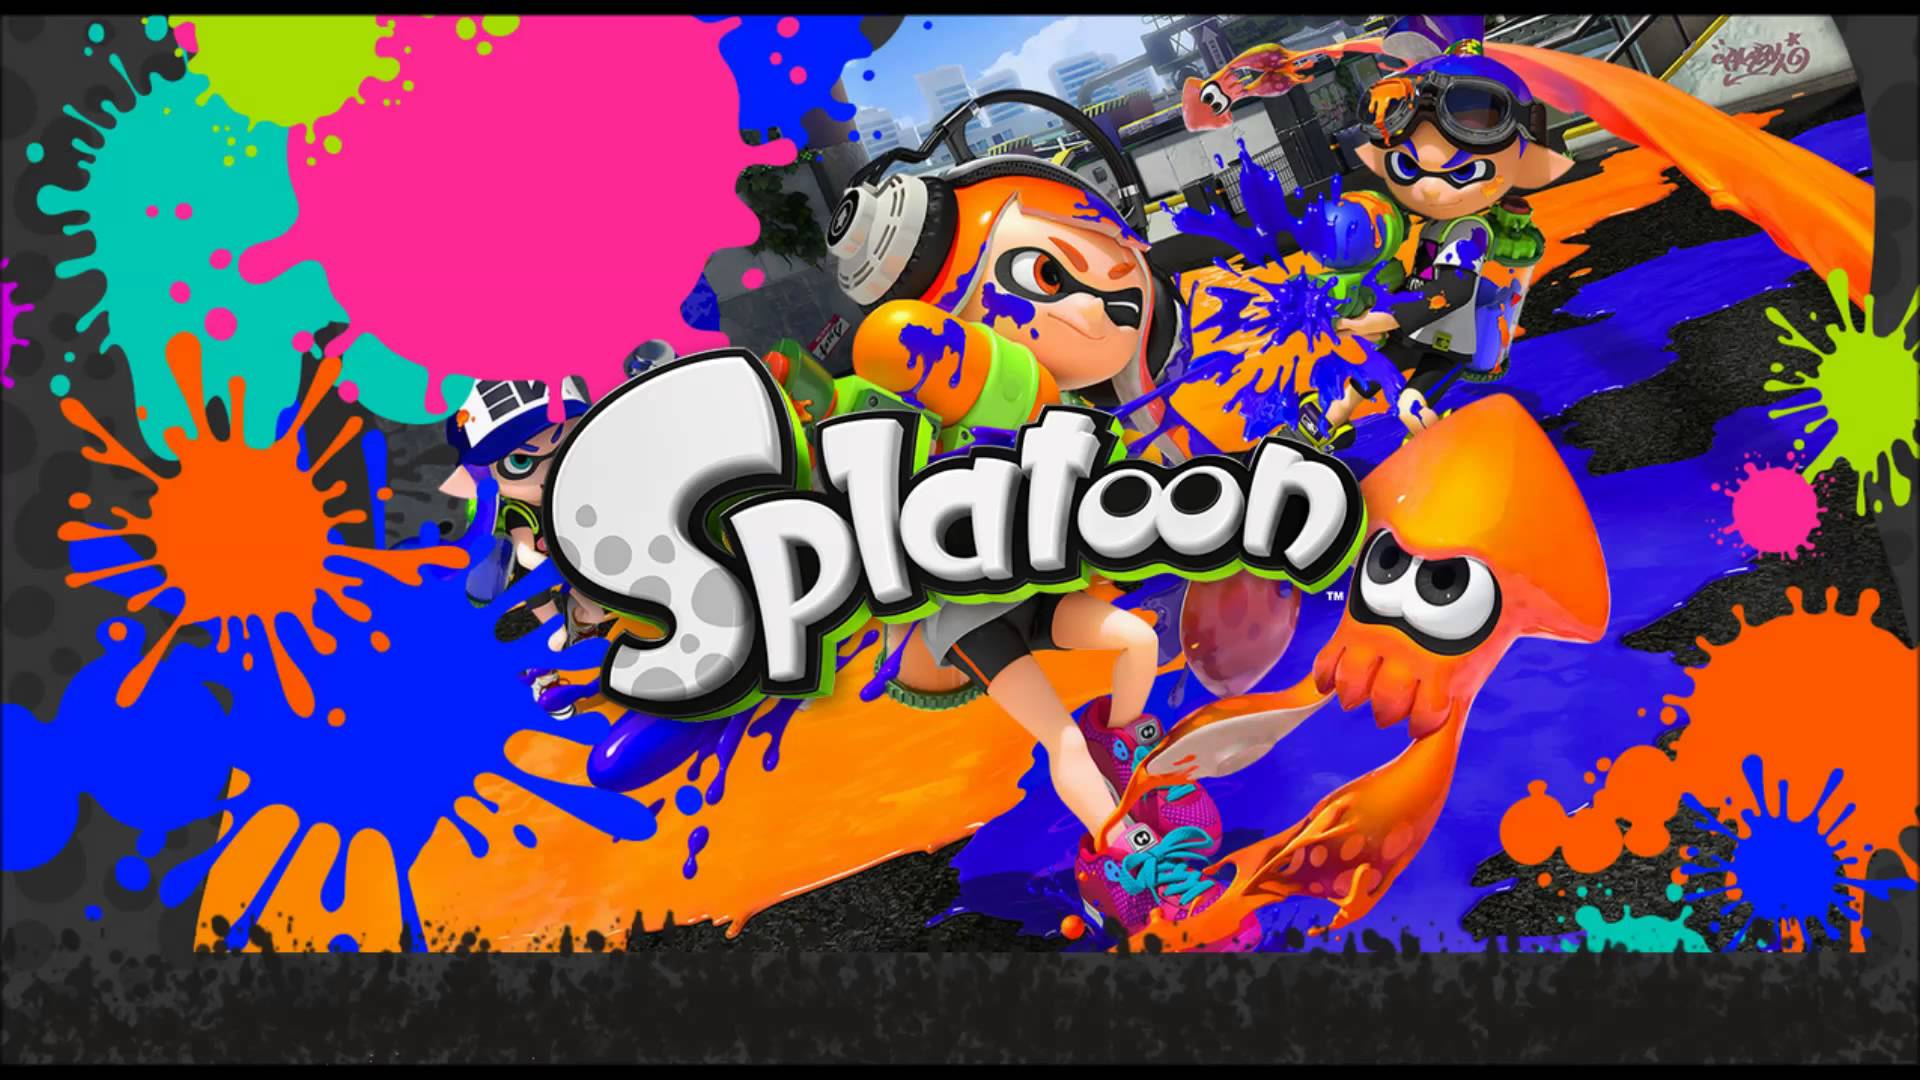 splatoon t-shirts